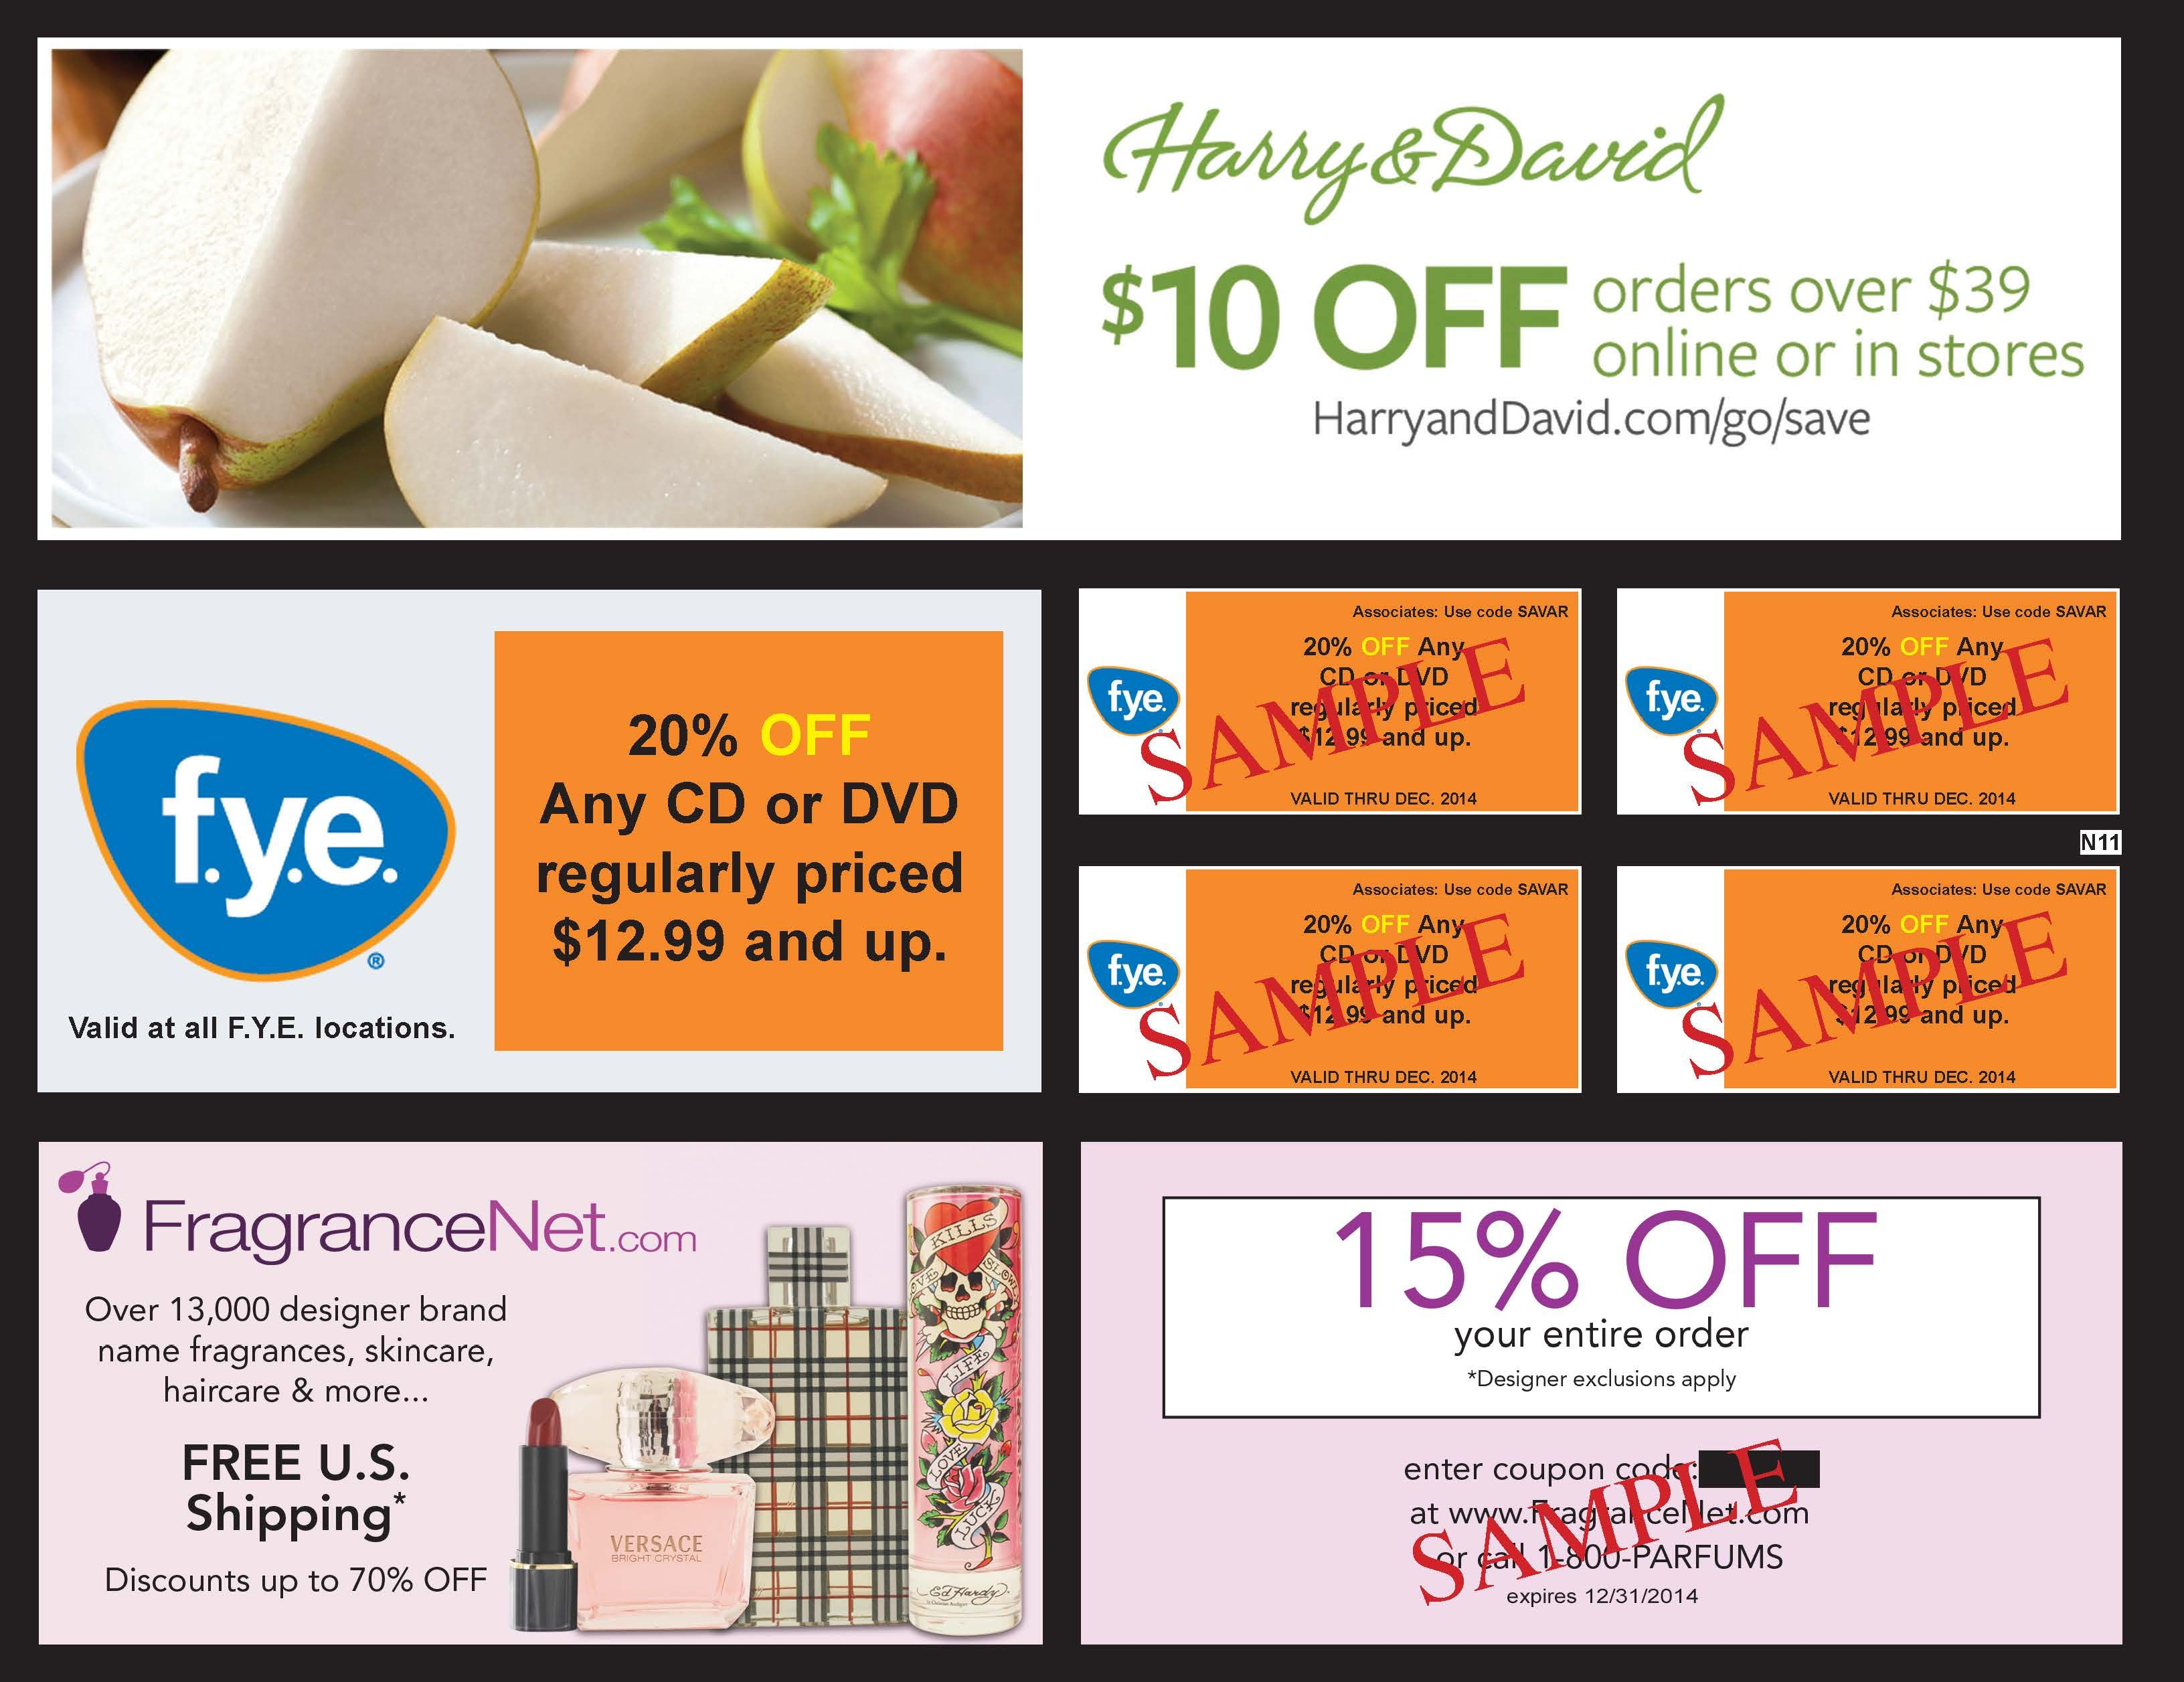 Harry David F Y E And Frangrancenet Com Are Featured In All U S Editions Of 2014 Savearound Coupon Books Coupon Book Flip Book Branding Design